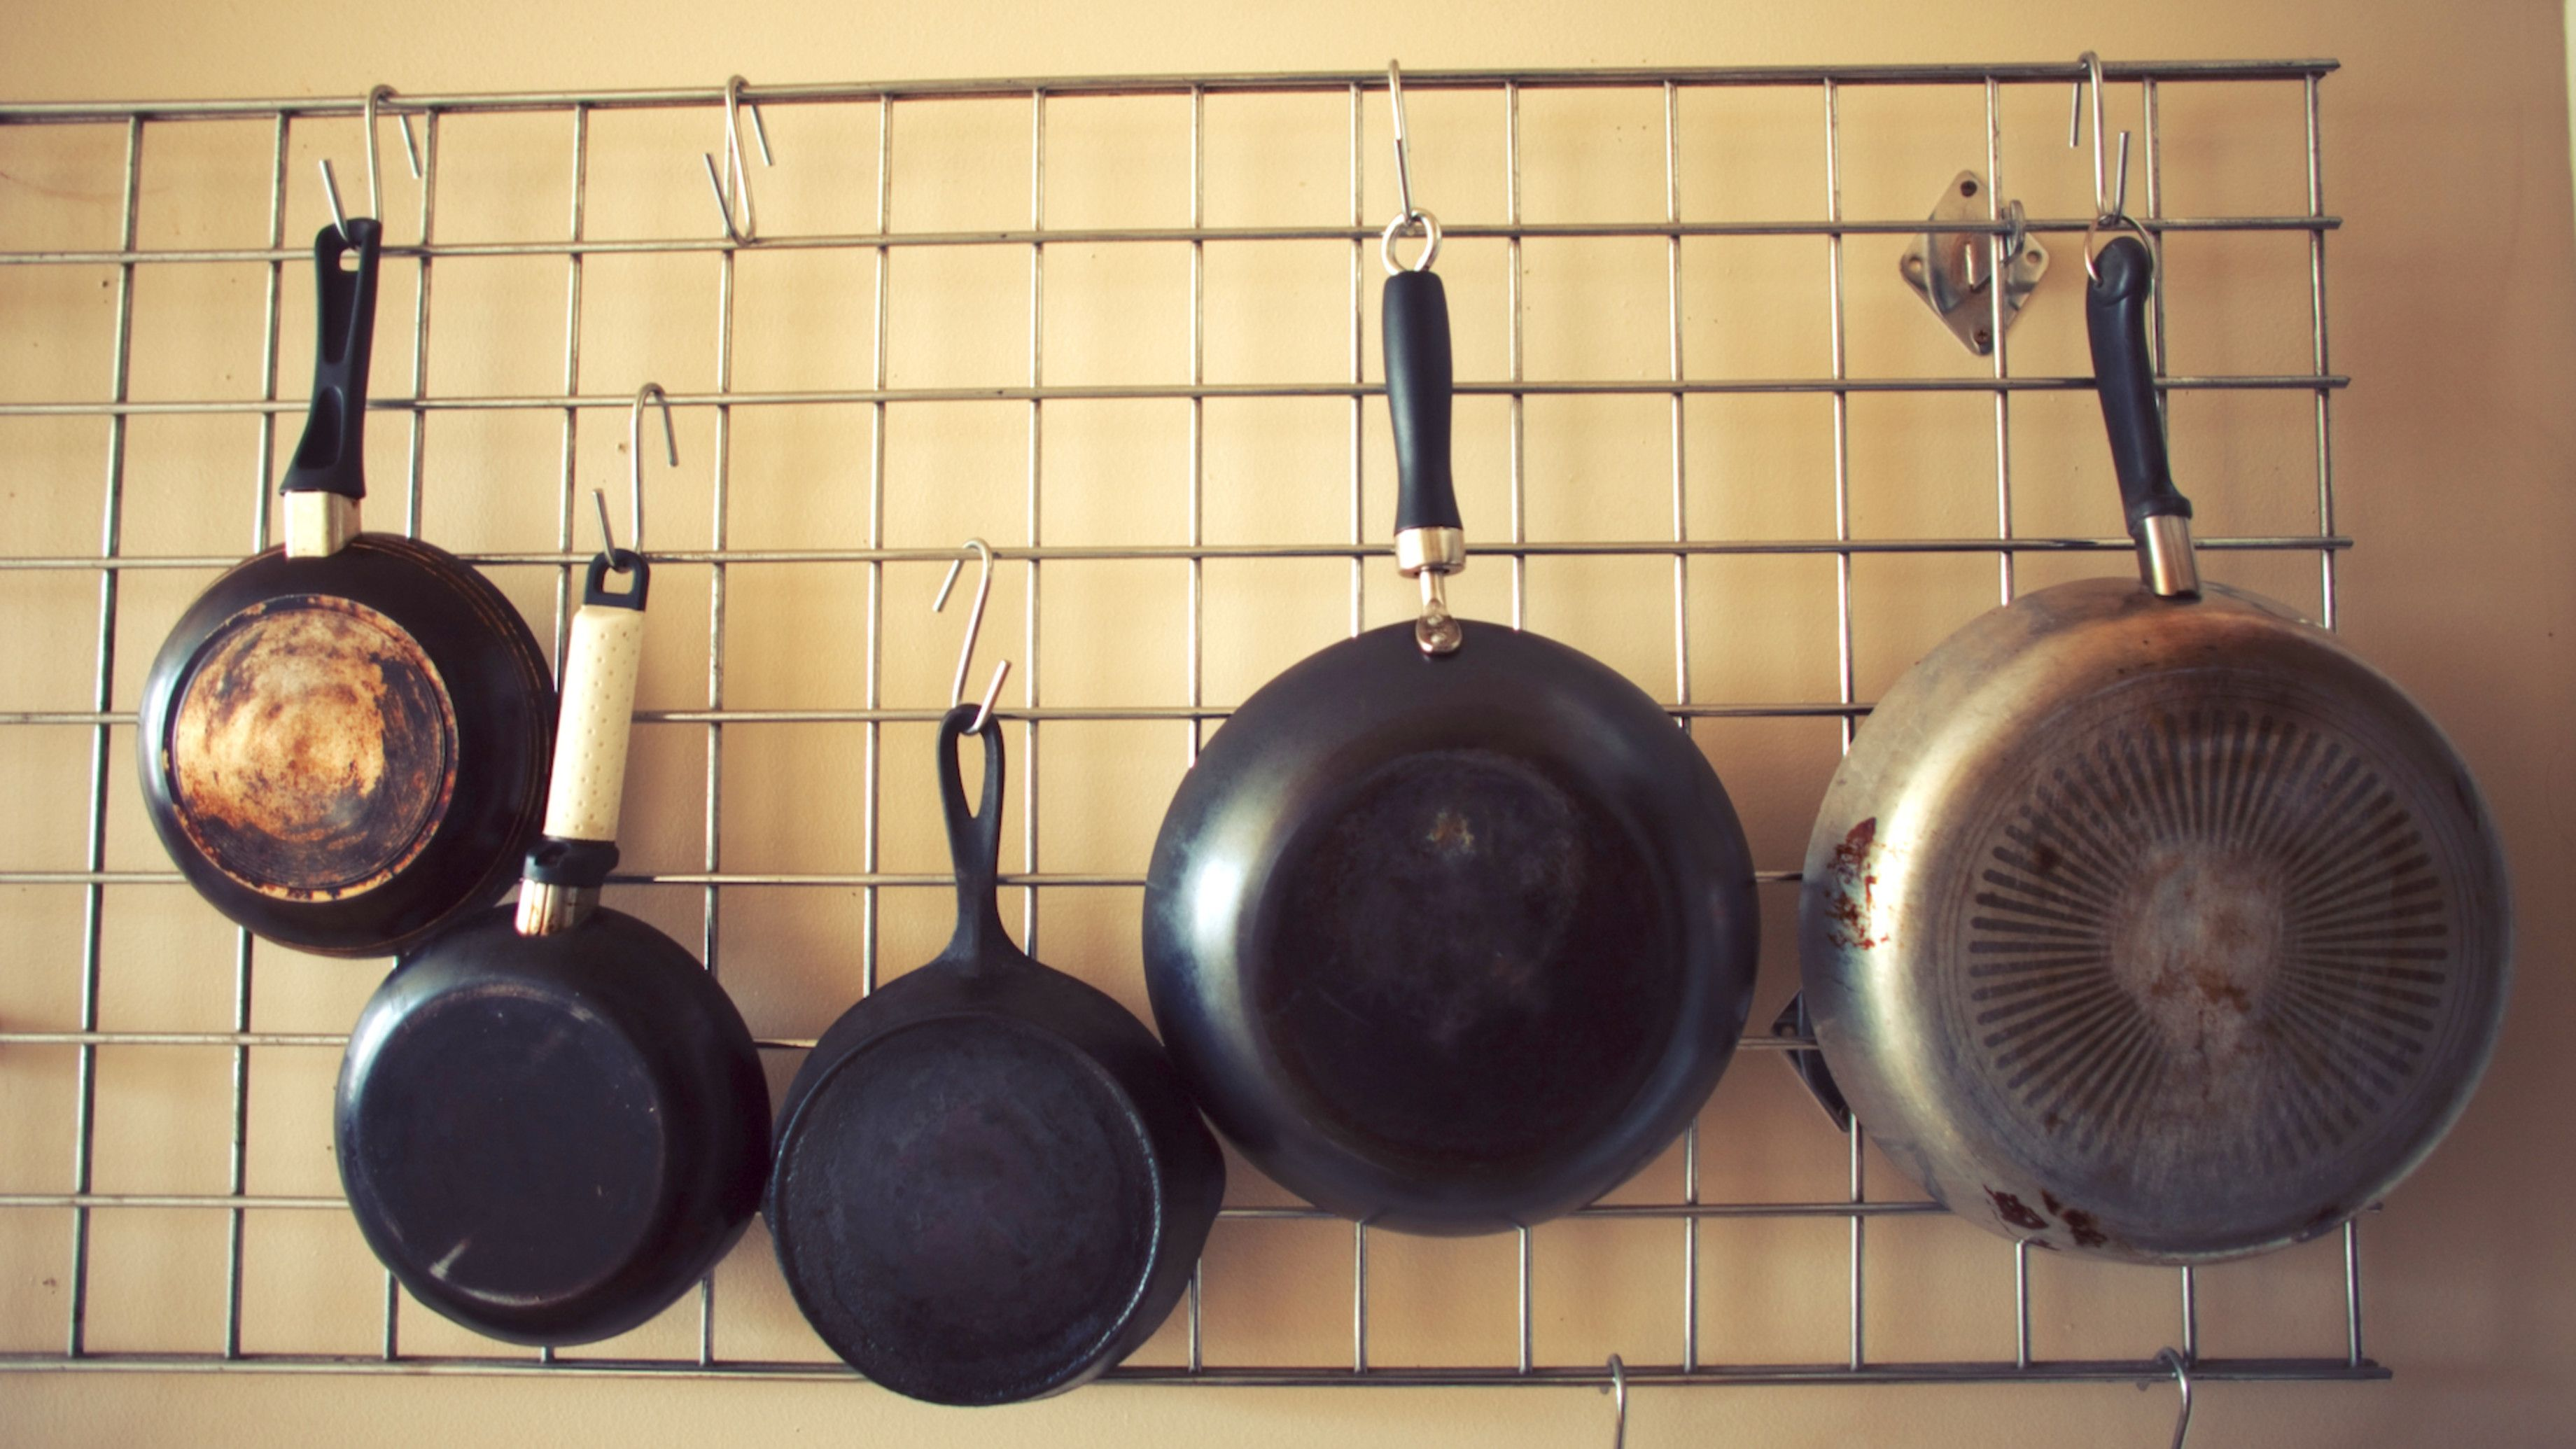 12 DIY pot rack projects to save space in your kitchen | Pot rack ...